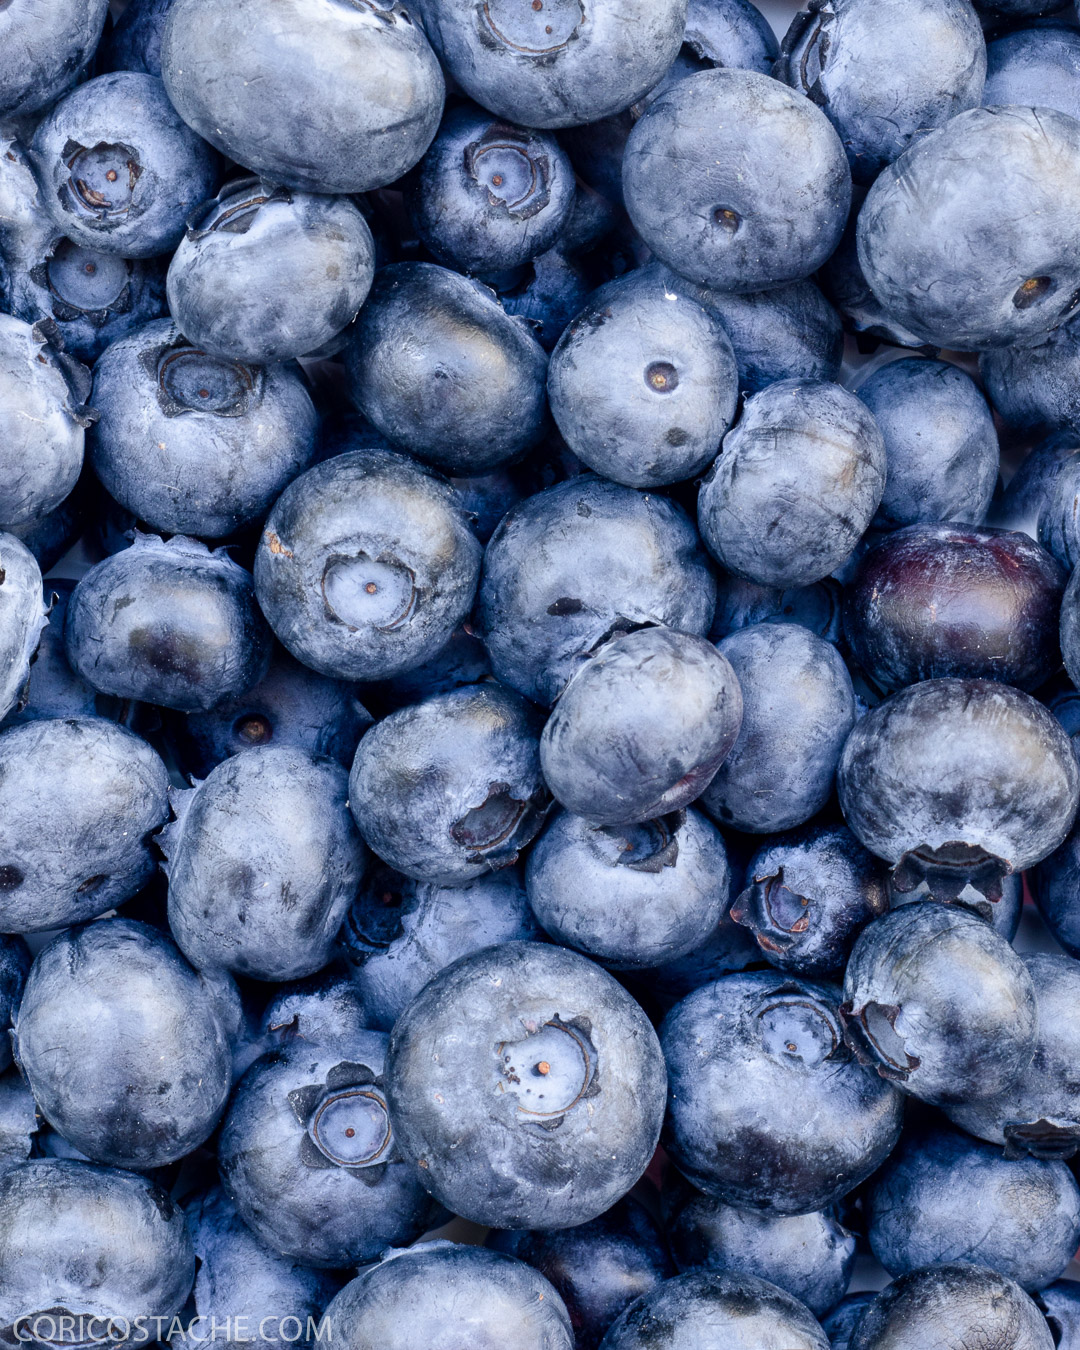 blueberry food photography